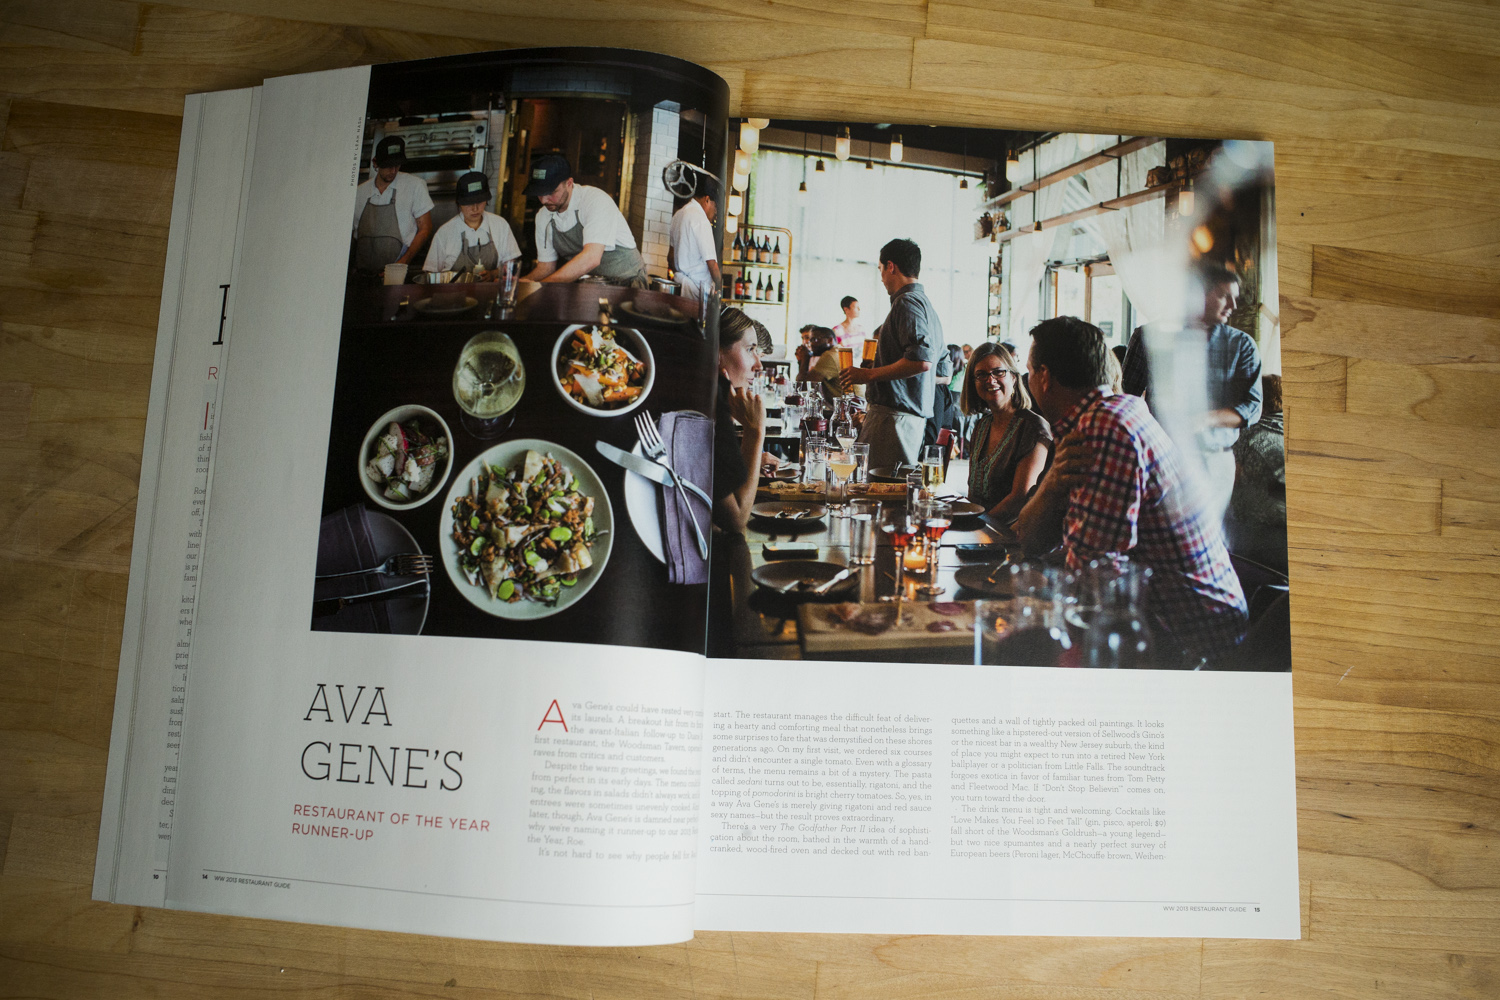 Willamette Week's 2013 Restaurant Guide. Photos by Leah Nash.